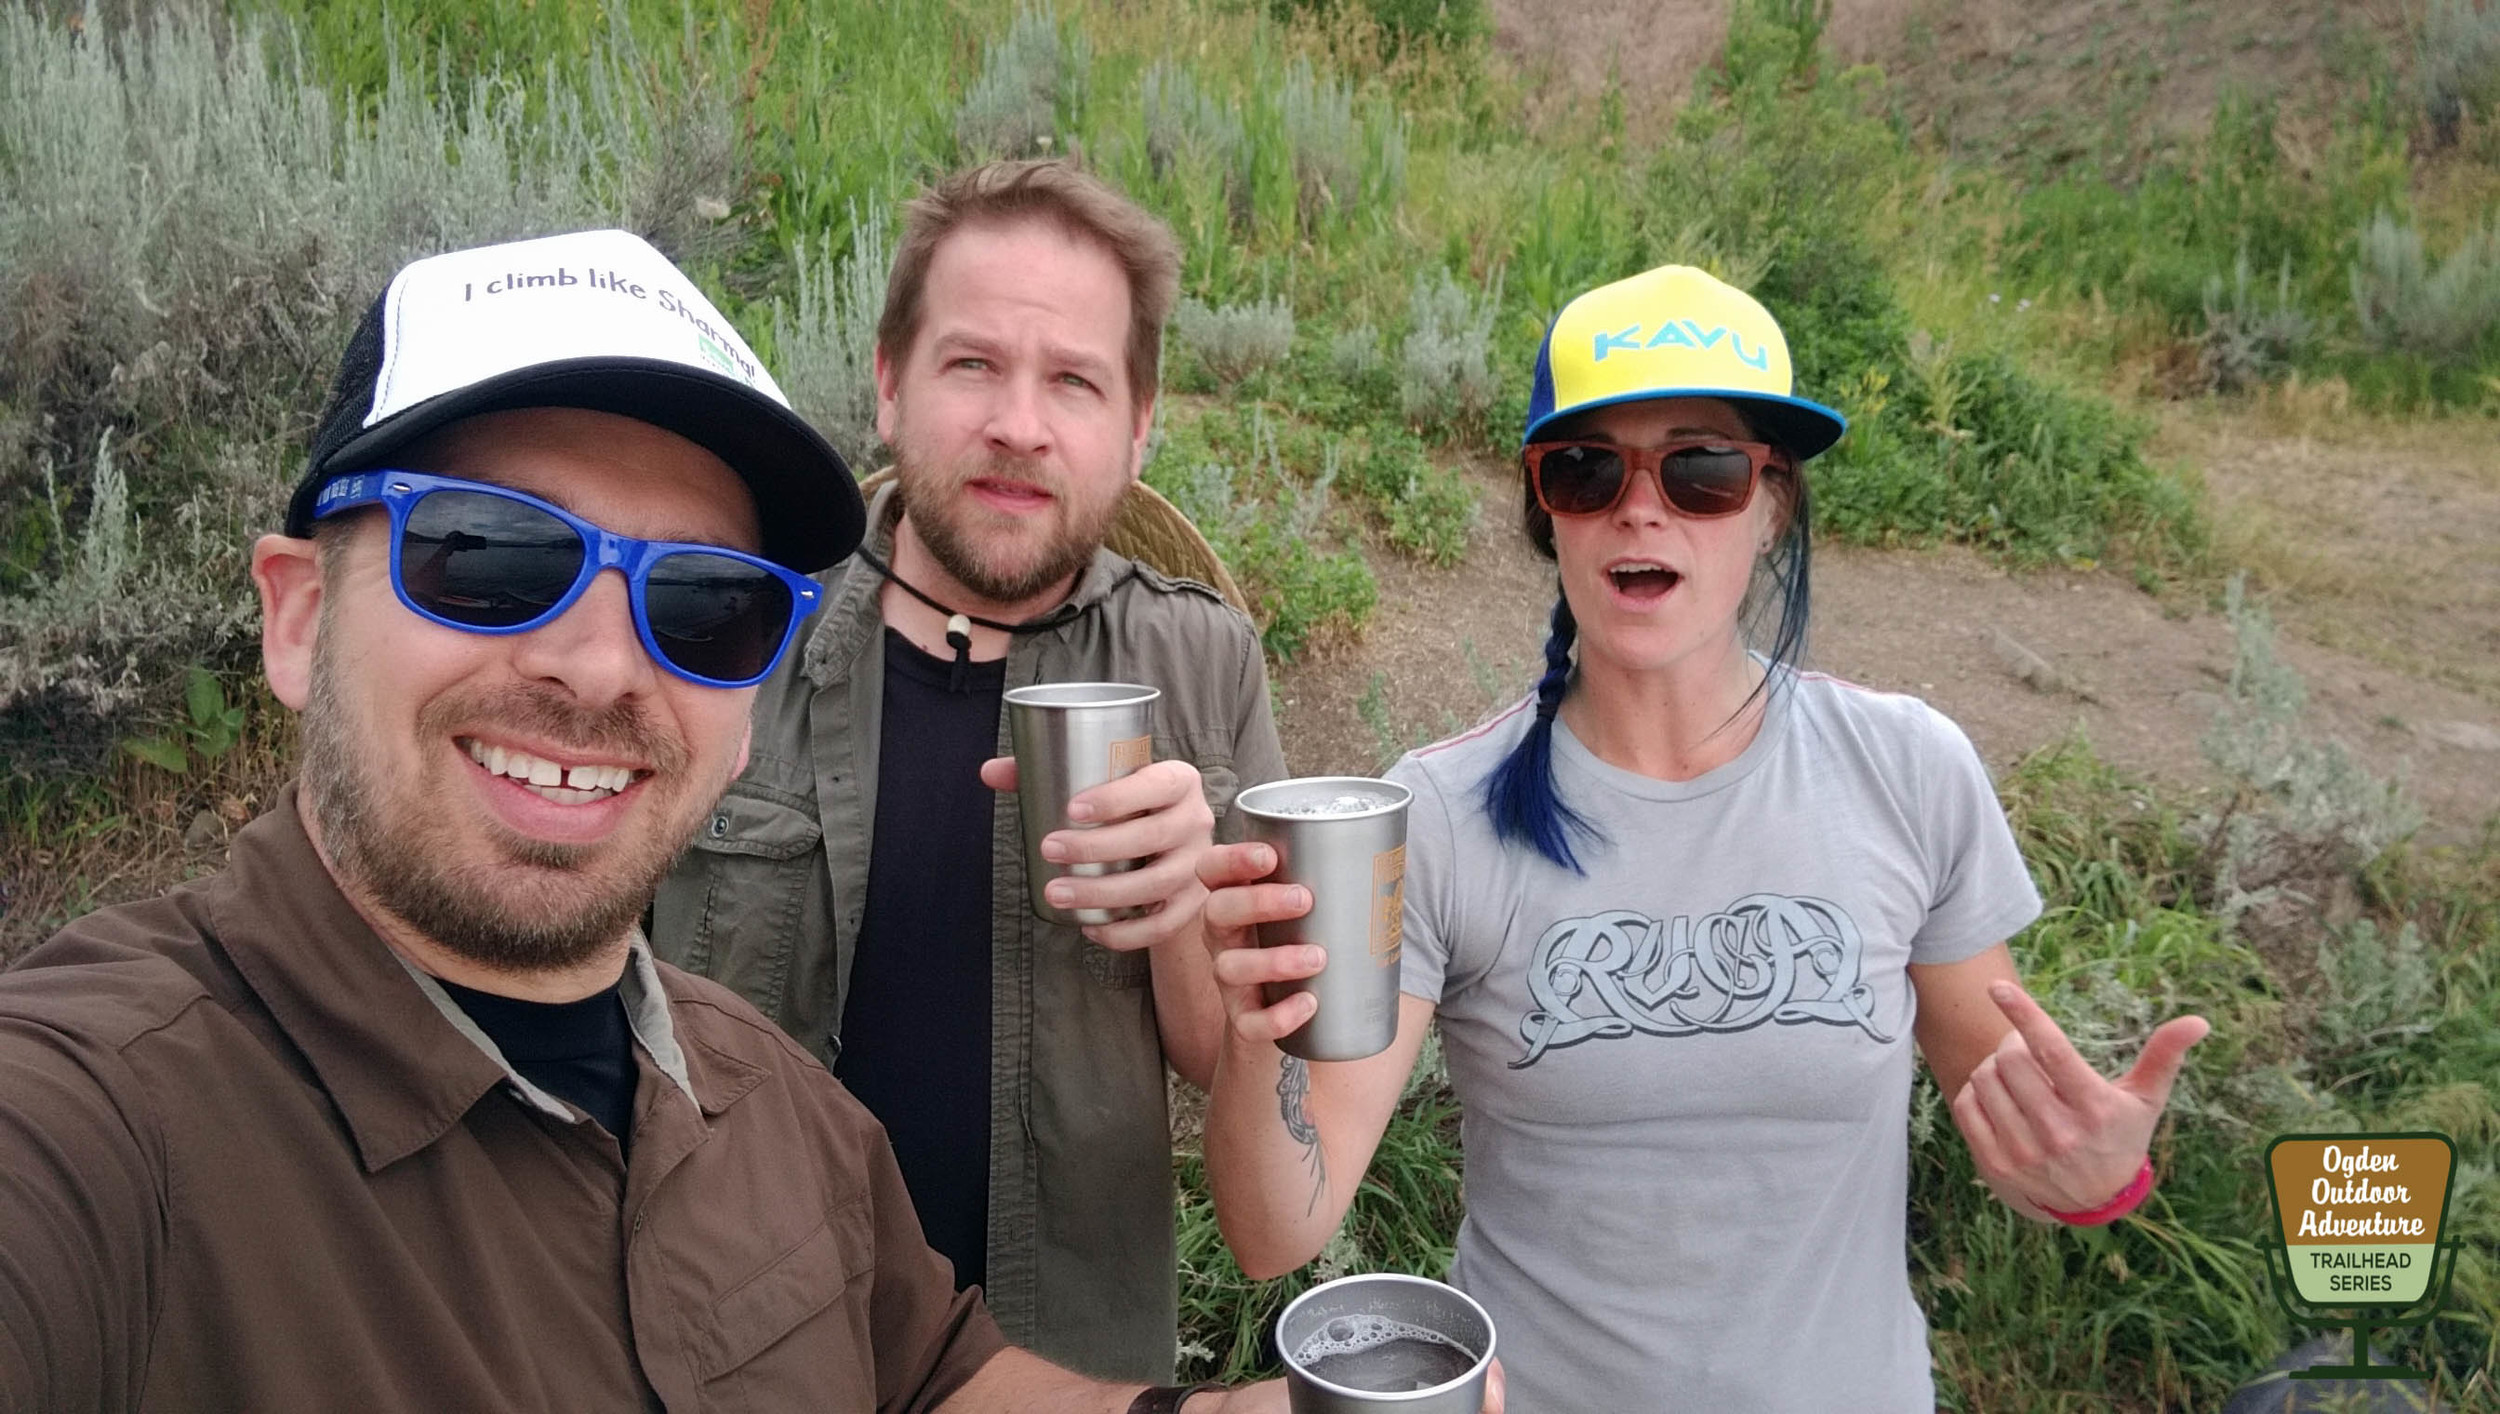 Roosters Brewer, Jacquie King joined us for a SUP and a beer chat.